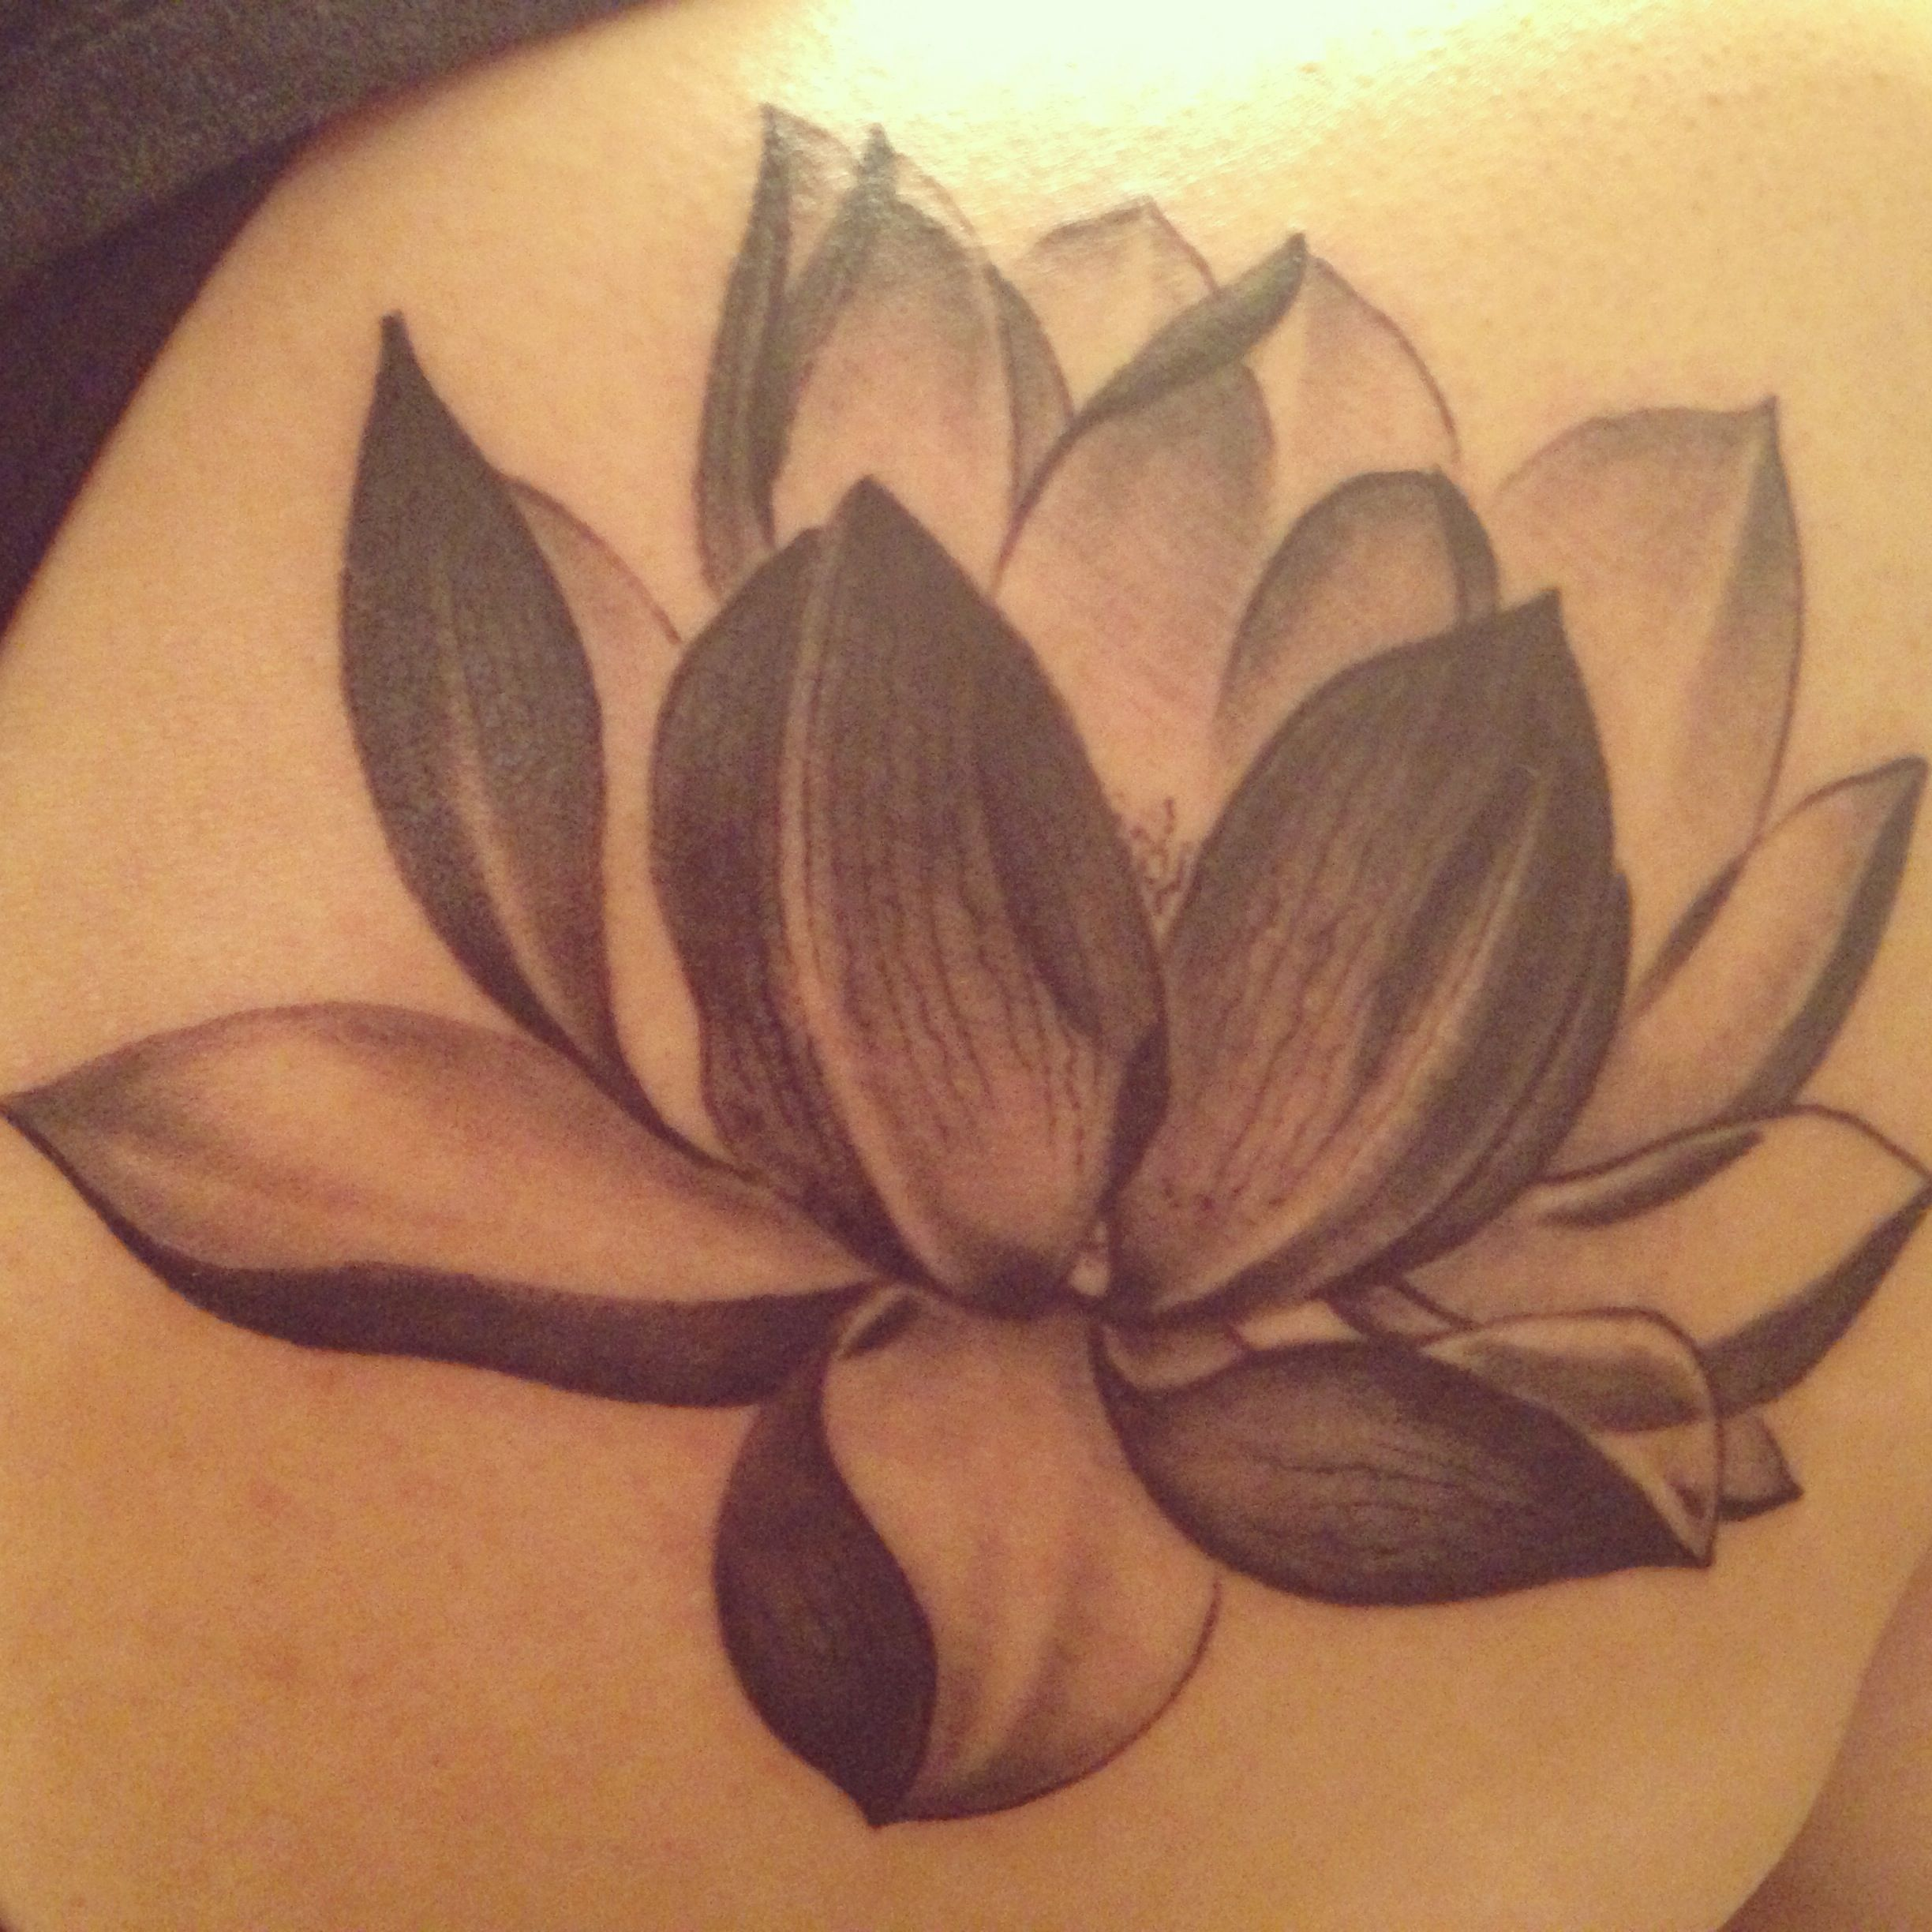 Another angle of my lotus tattoo tatzpiercingz pinterest another angle of my lotus tattoo white lotus tattoo lotus flower tattoos lotus flowers izmirmasajfo